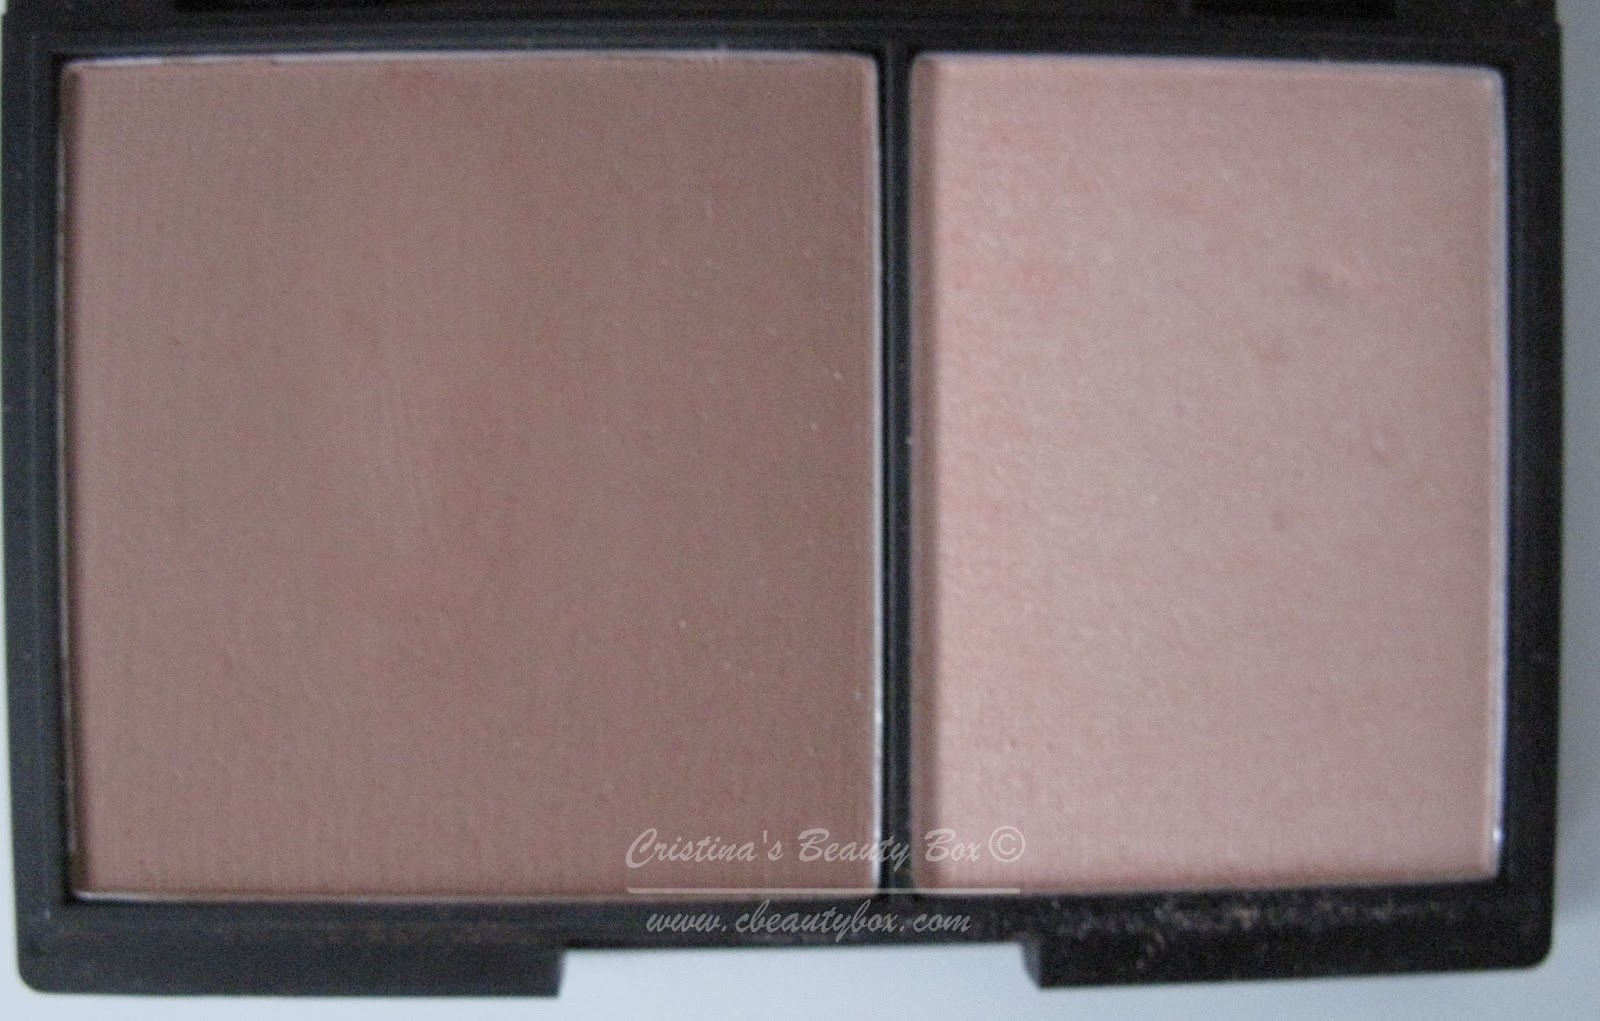 Sleek Contour Kit Light Review Swatches